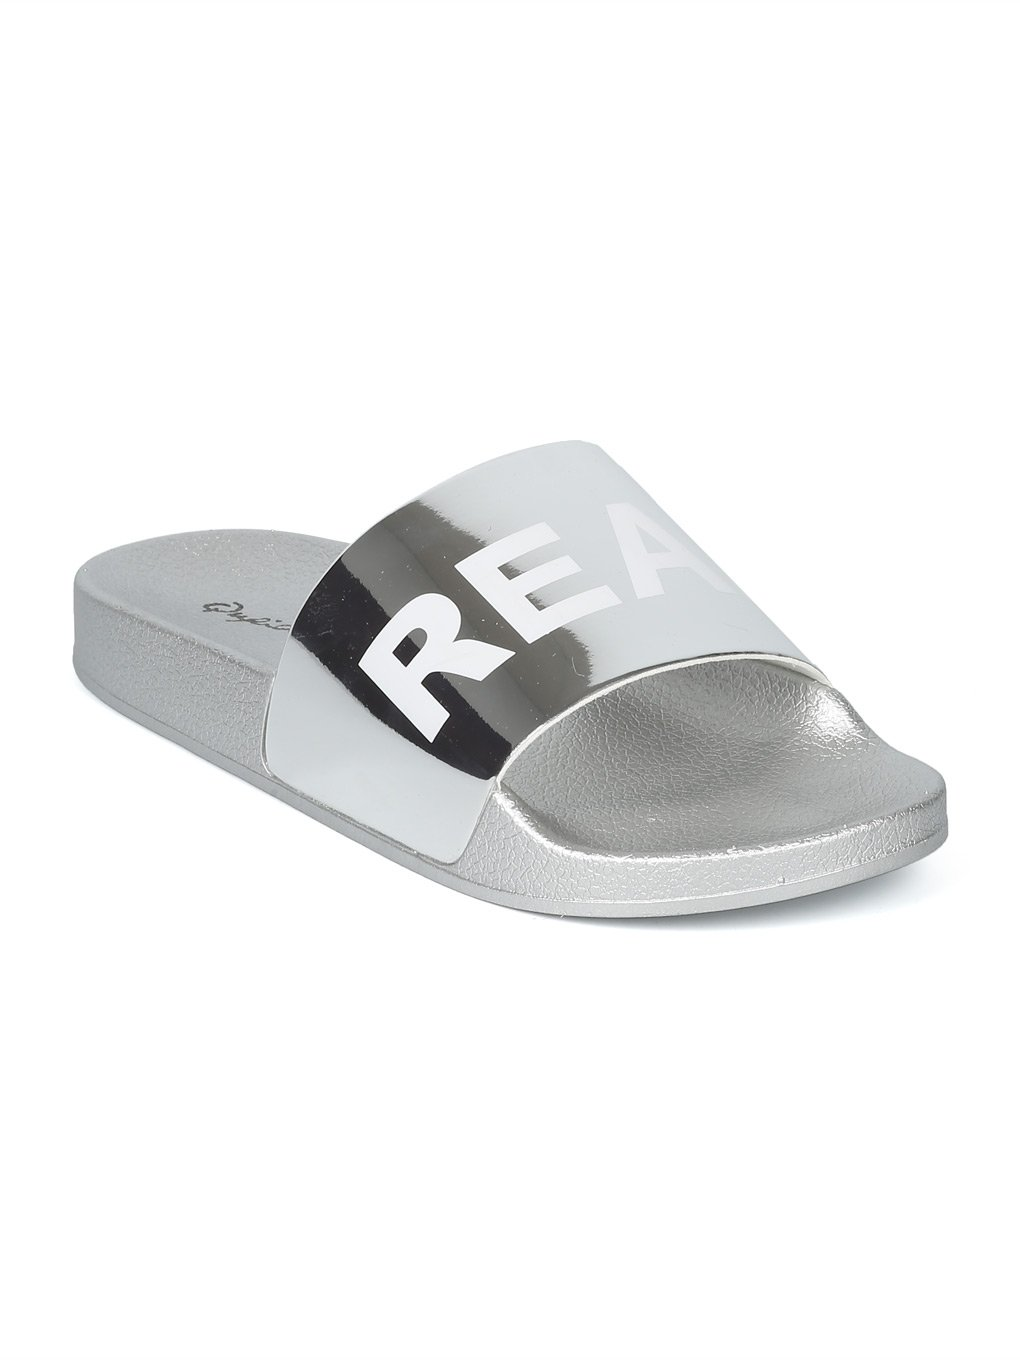 Women Metallic PVC Real AF Open Toe Footbed Slide HH55 - Silver Metallic (Size: 7.0)